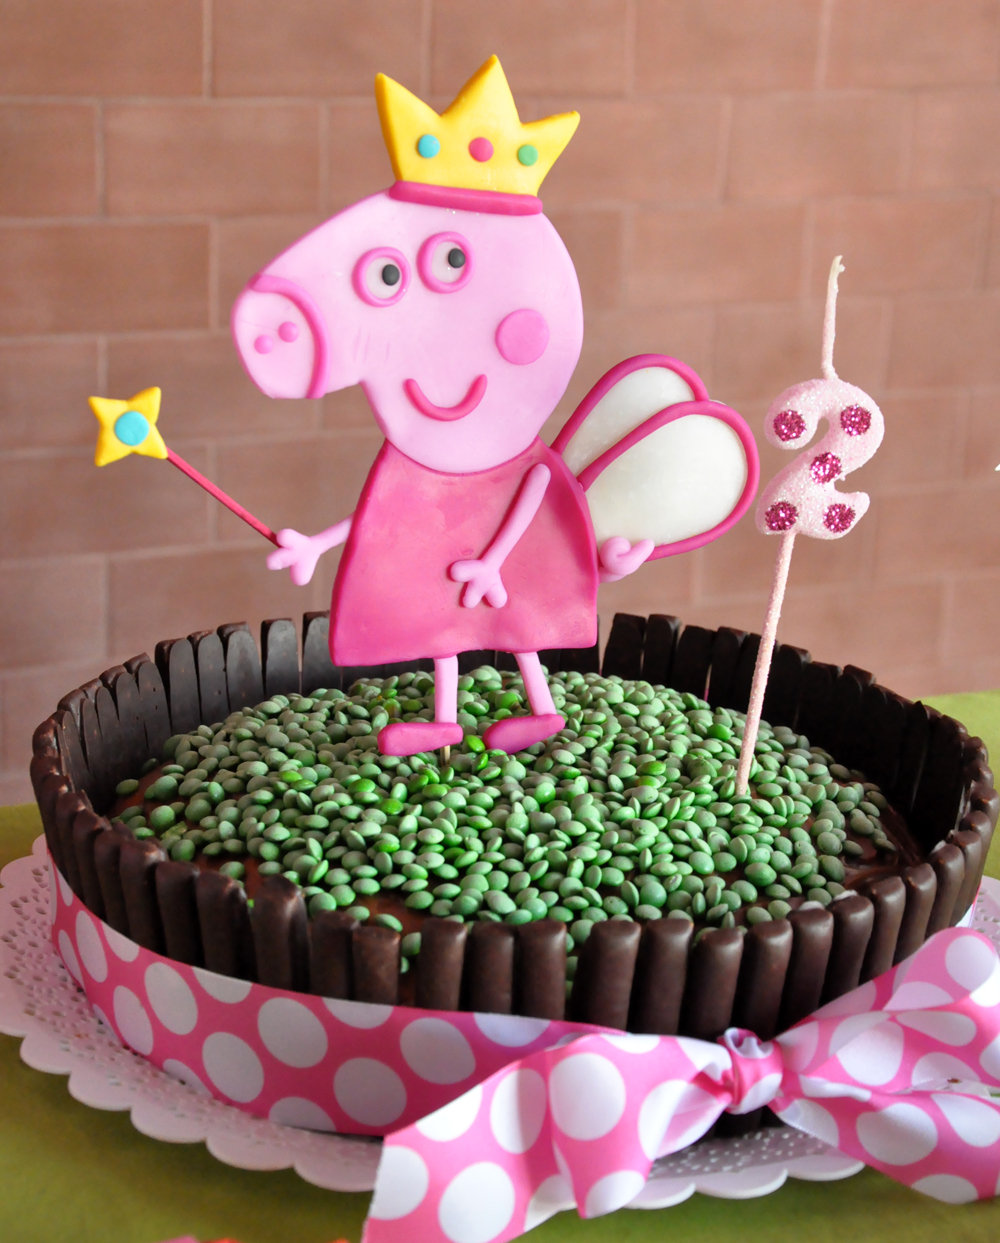 Decoraci n cumplea os peppa pig chica outlet for Decoracion de puertas para cumpleanos